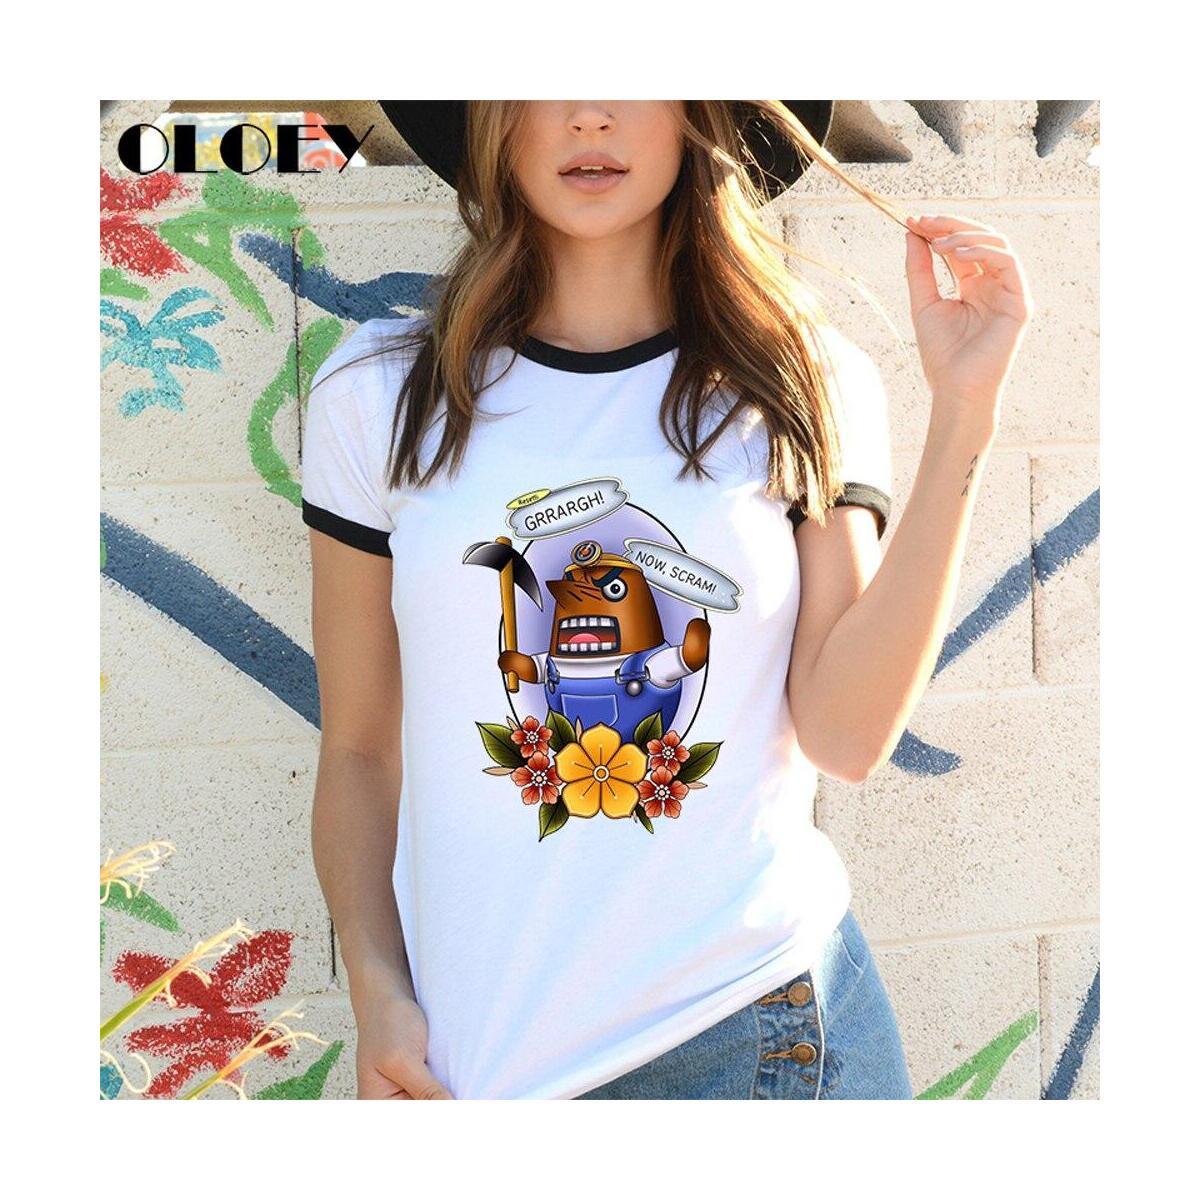 Animal Crossing Characters Tattoo Style Shirts, KK Slider / L